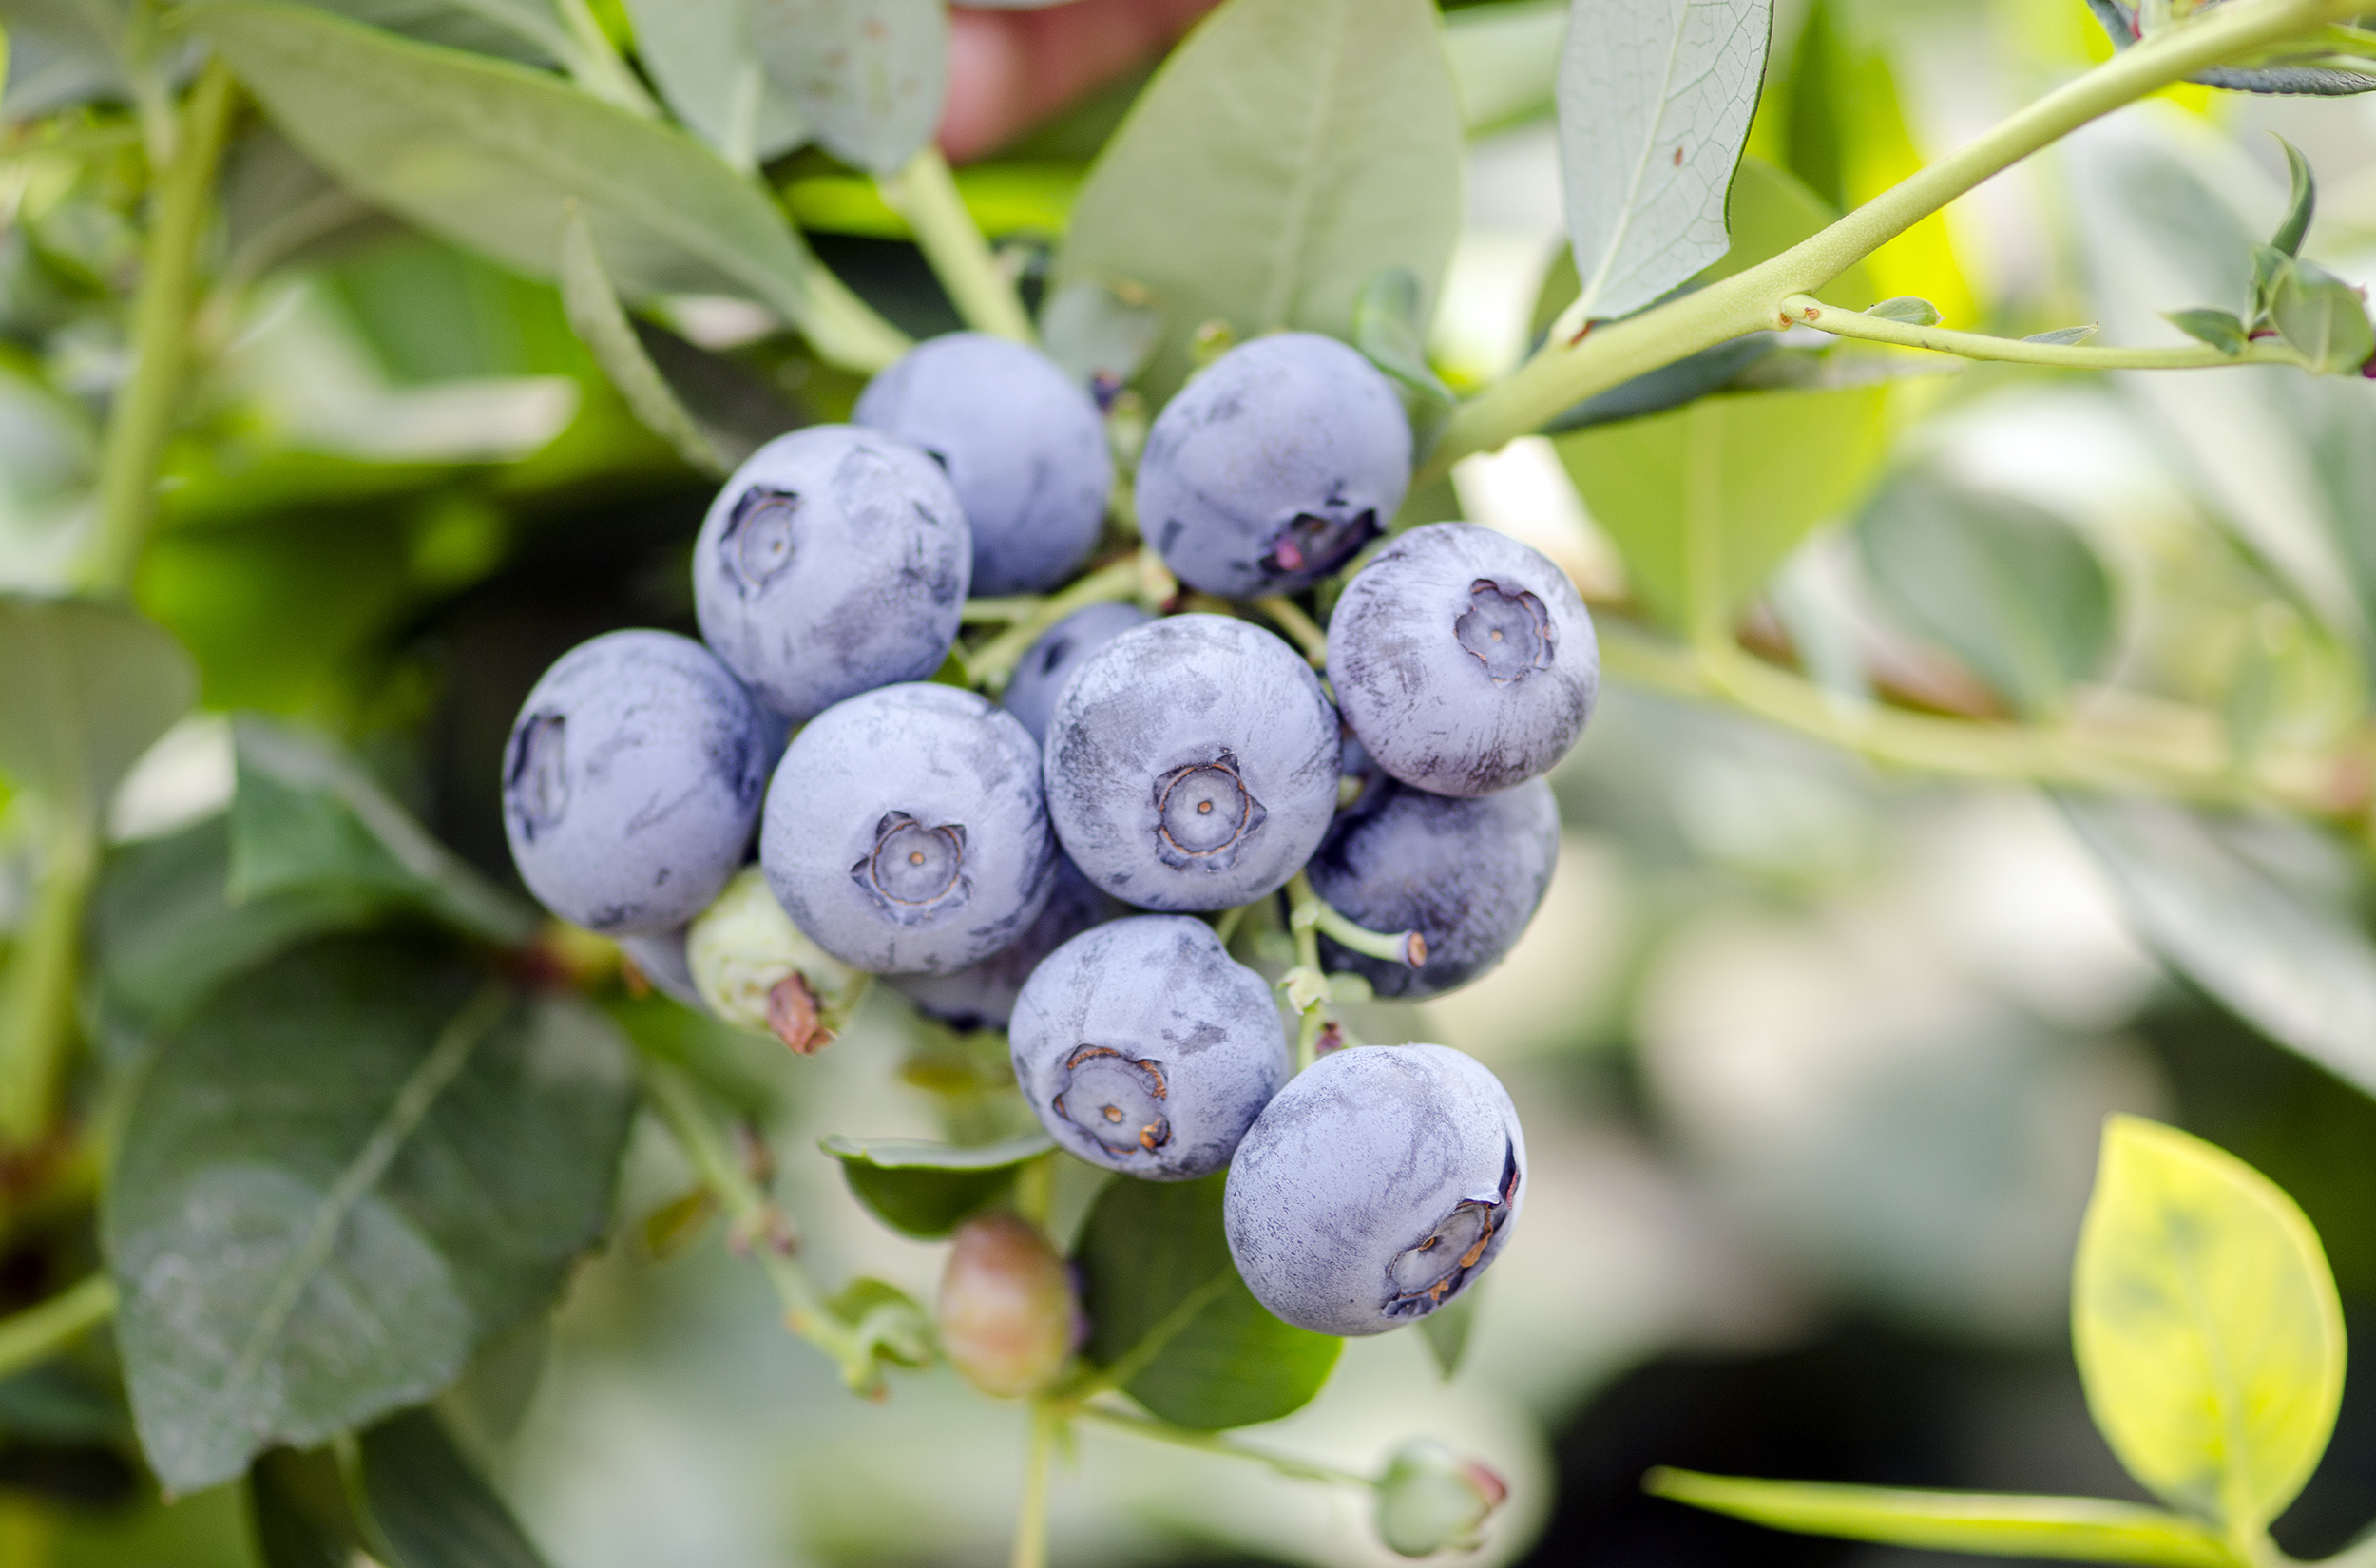 Direct from the field - Blueberries